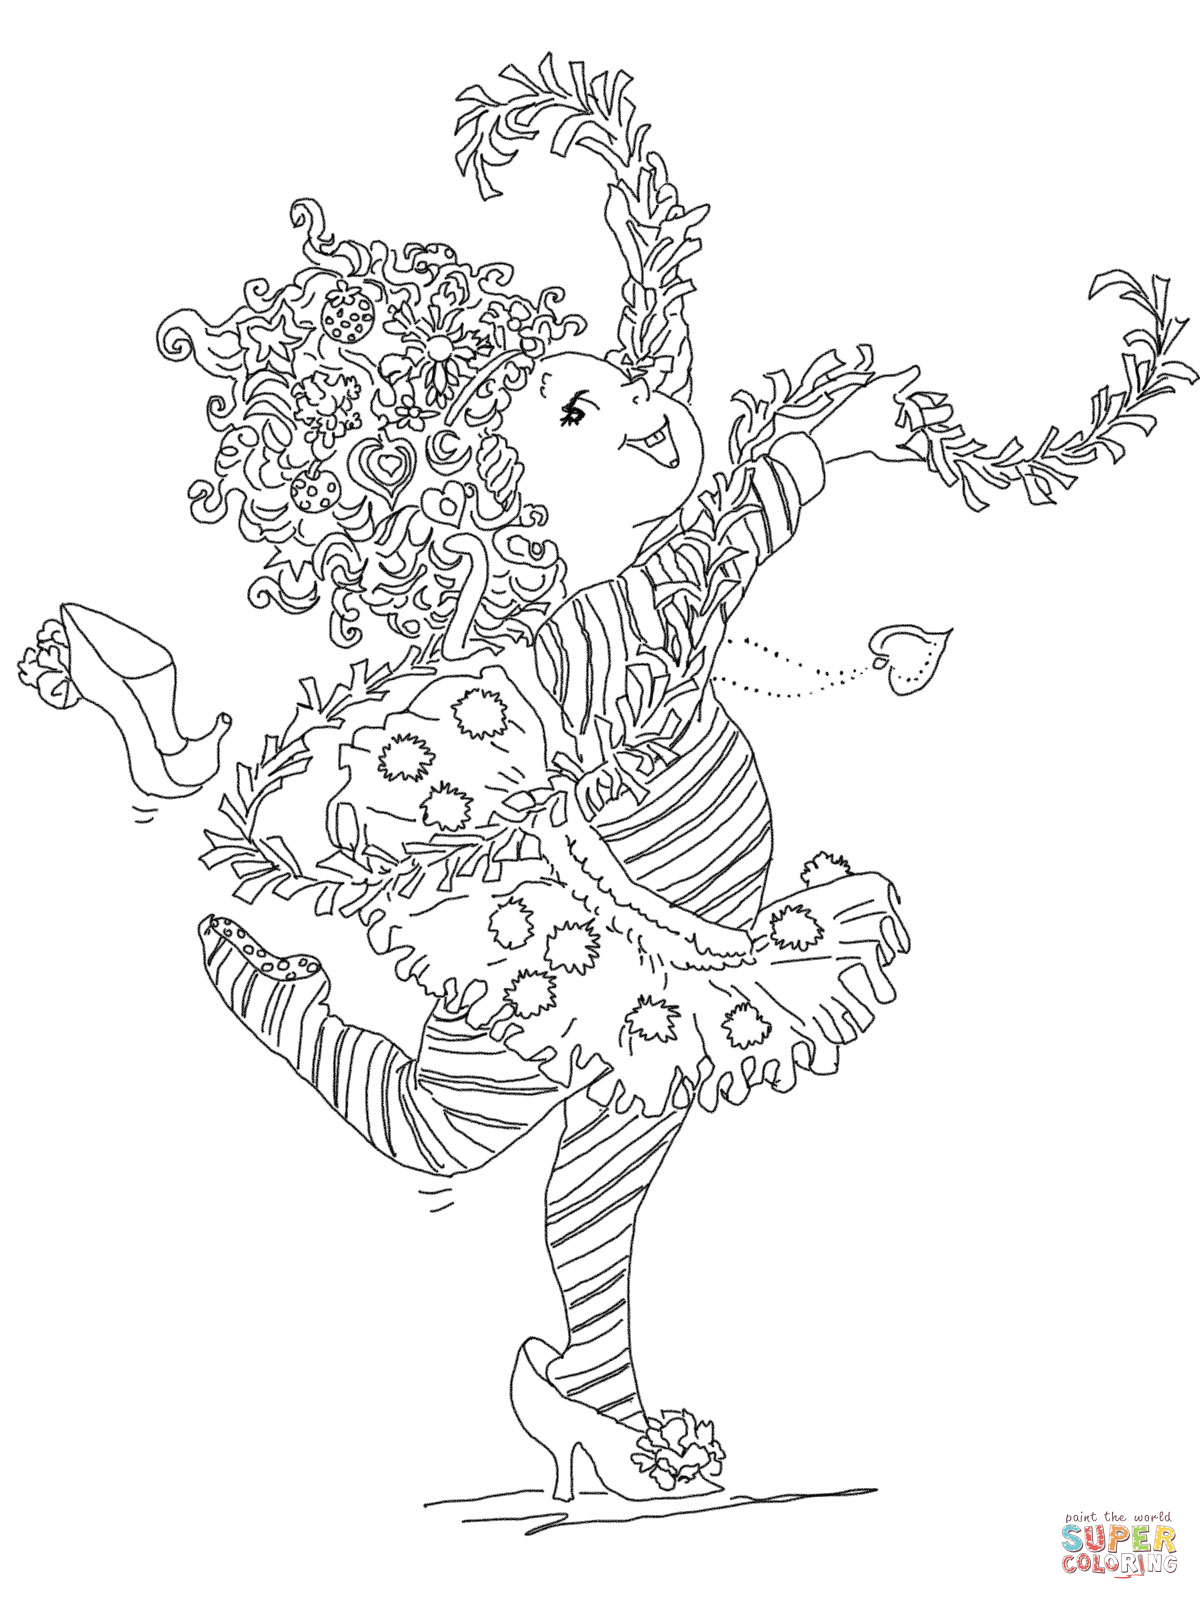 Fancy Nancy Printable Coloring Pages - AZ Coloring Pages